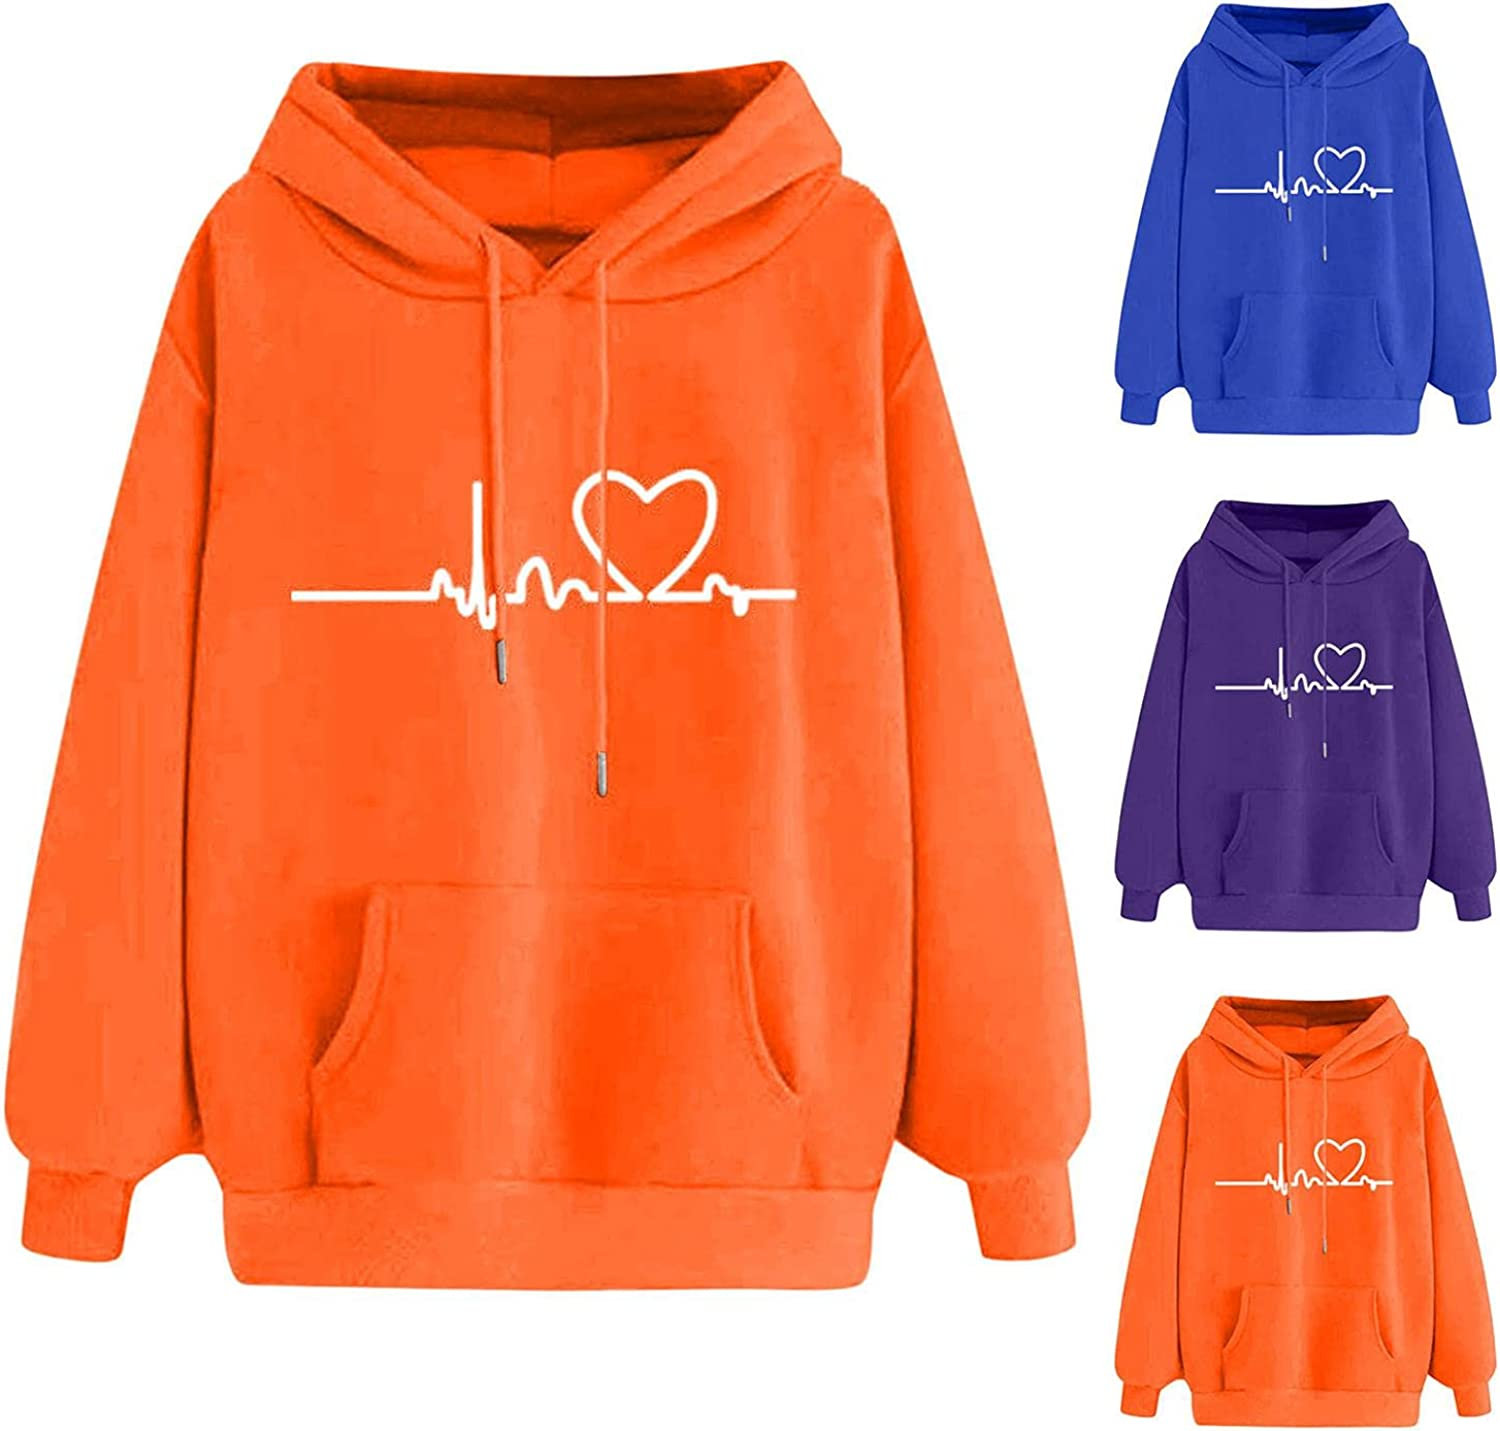 Fudule Cute Hoodies for Teen Girls Heart Graphic Sweatshirts Colorful Long Sleeve Shirts Casual Loose Fit Pullover Tops